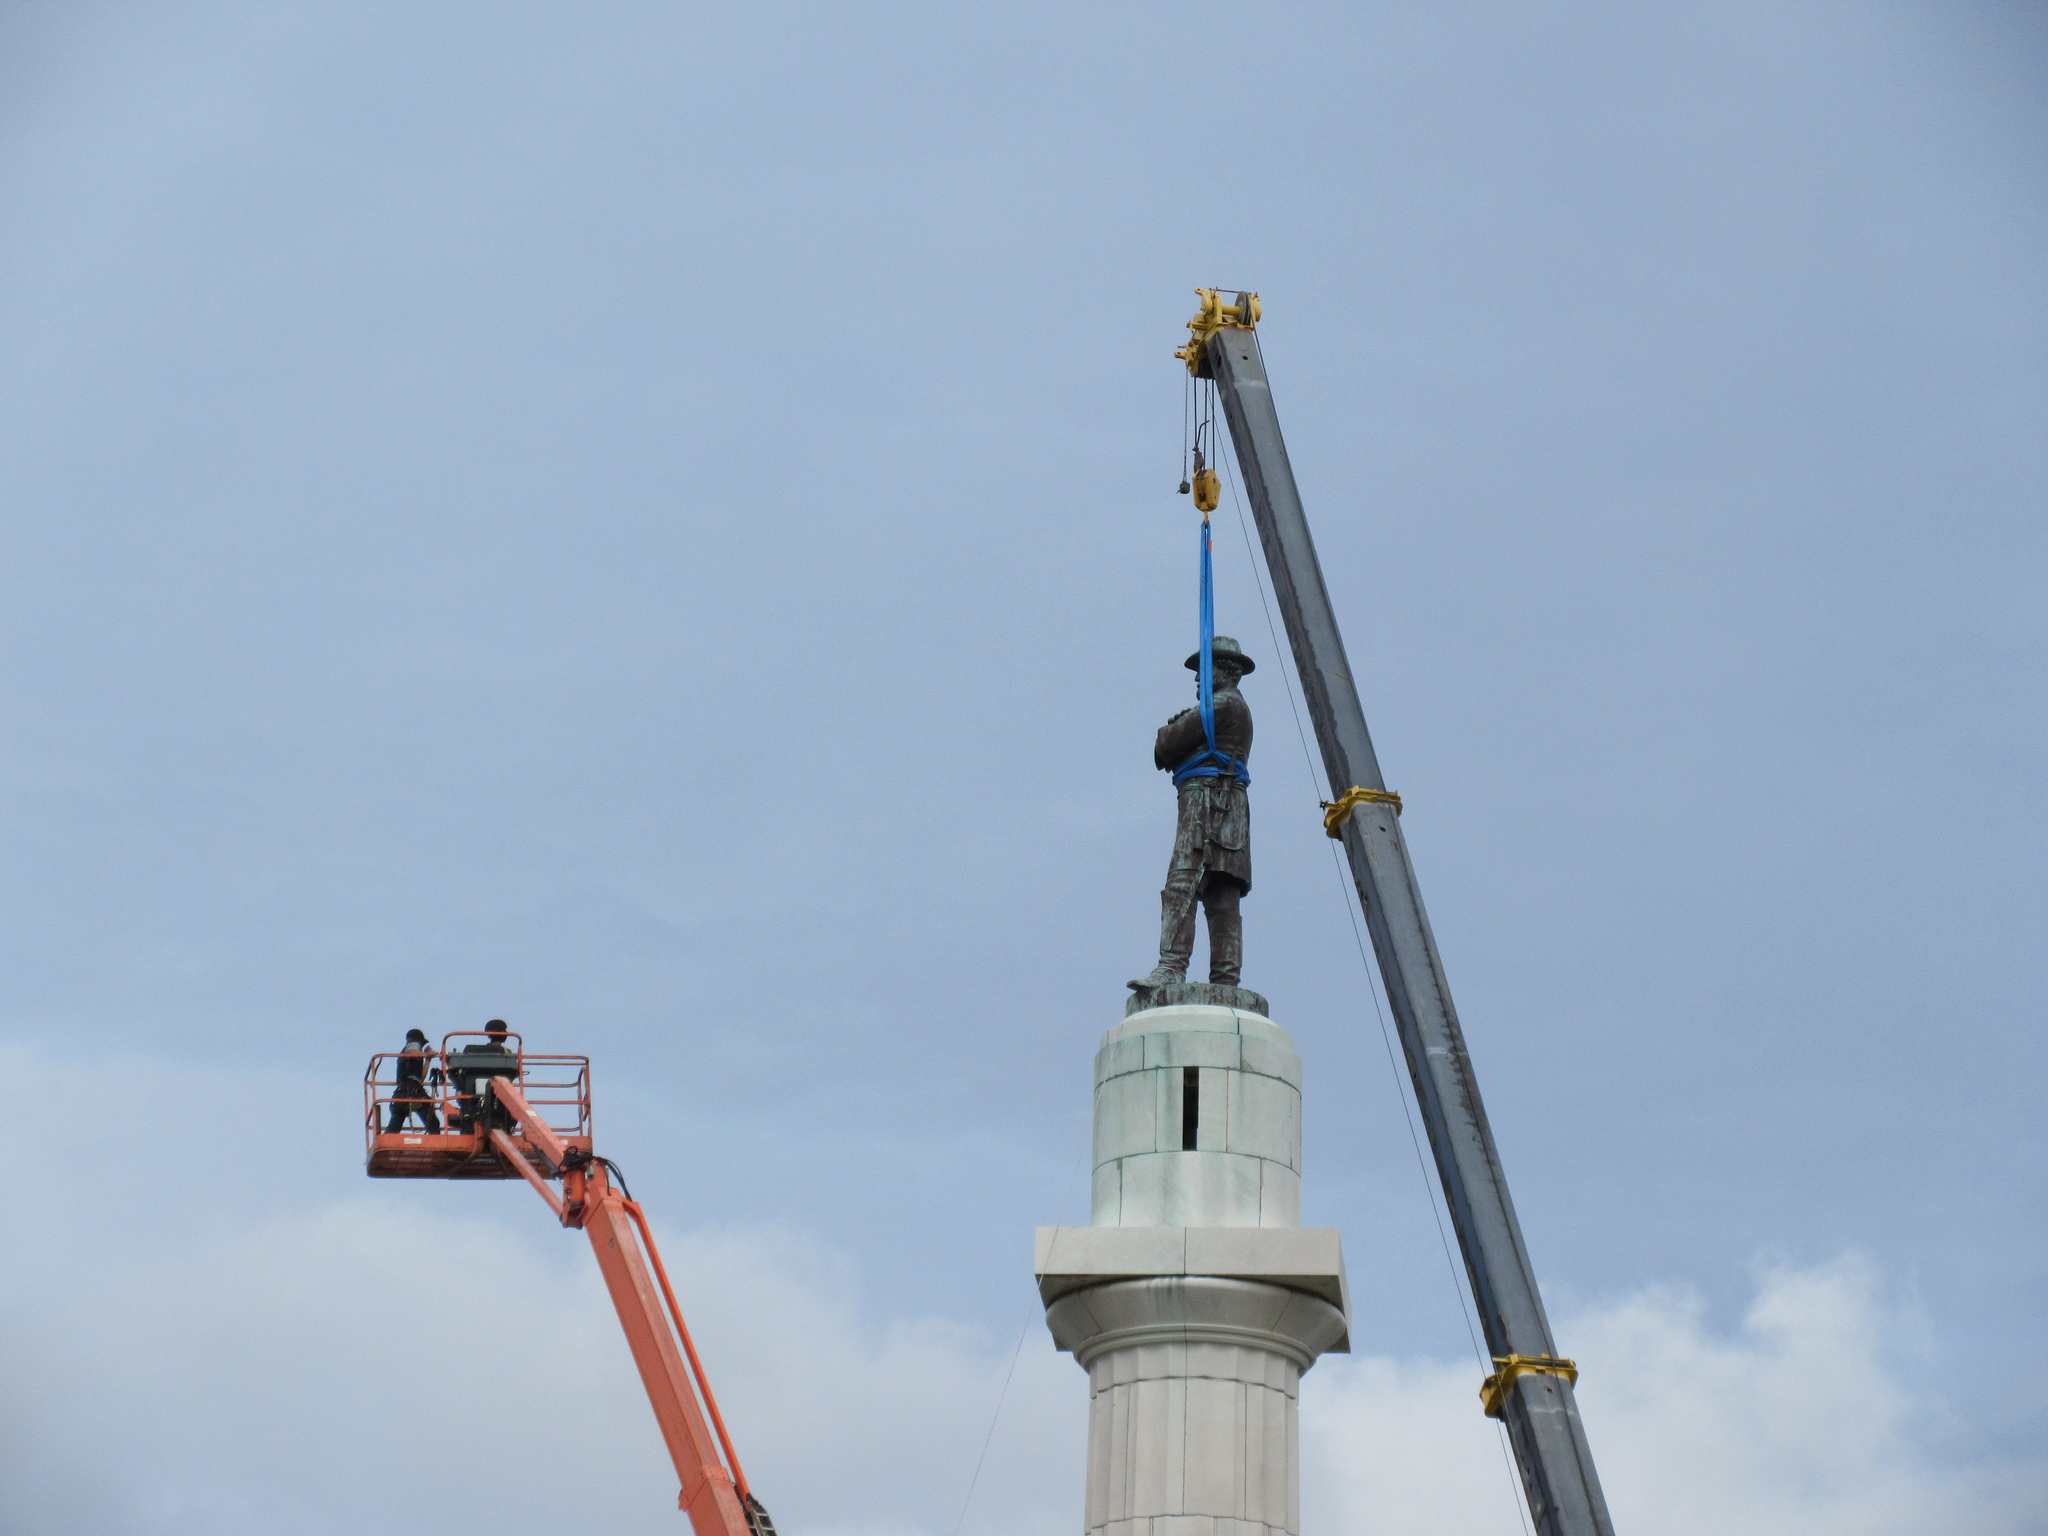 Robert E. Lee statue removal